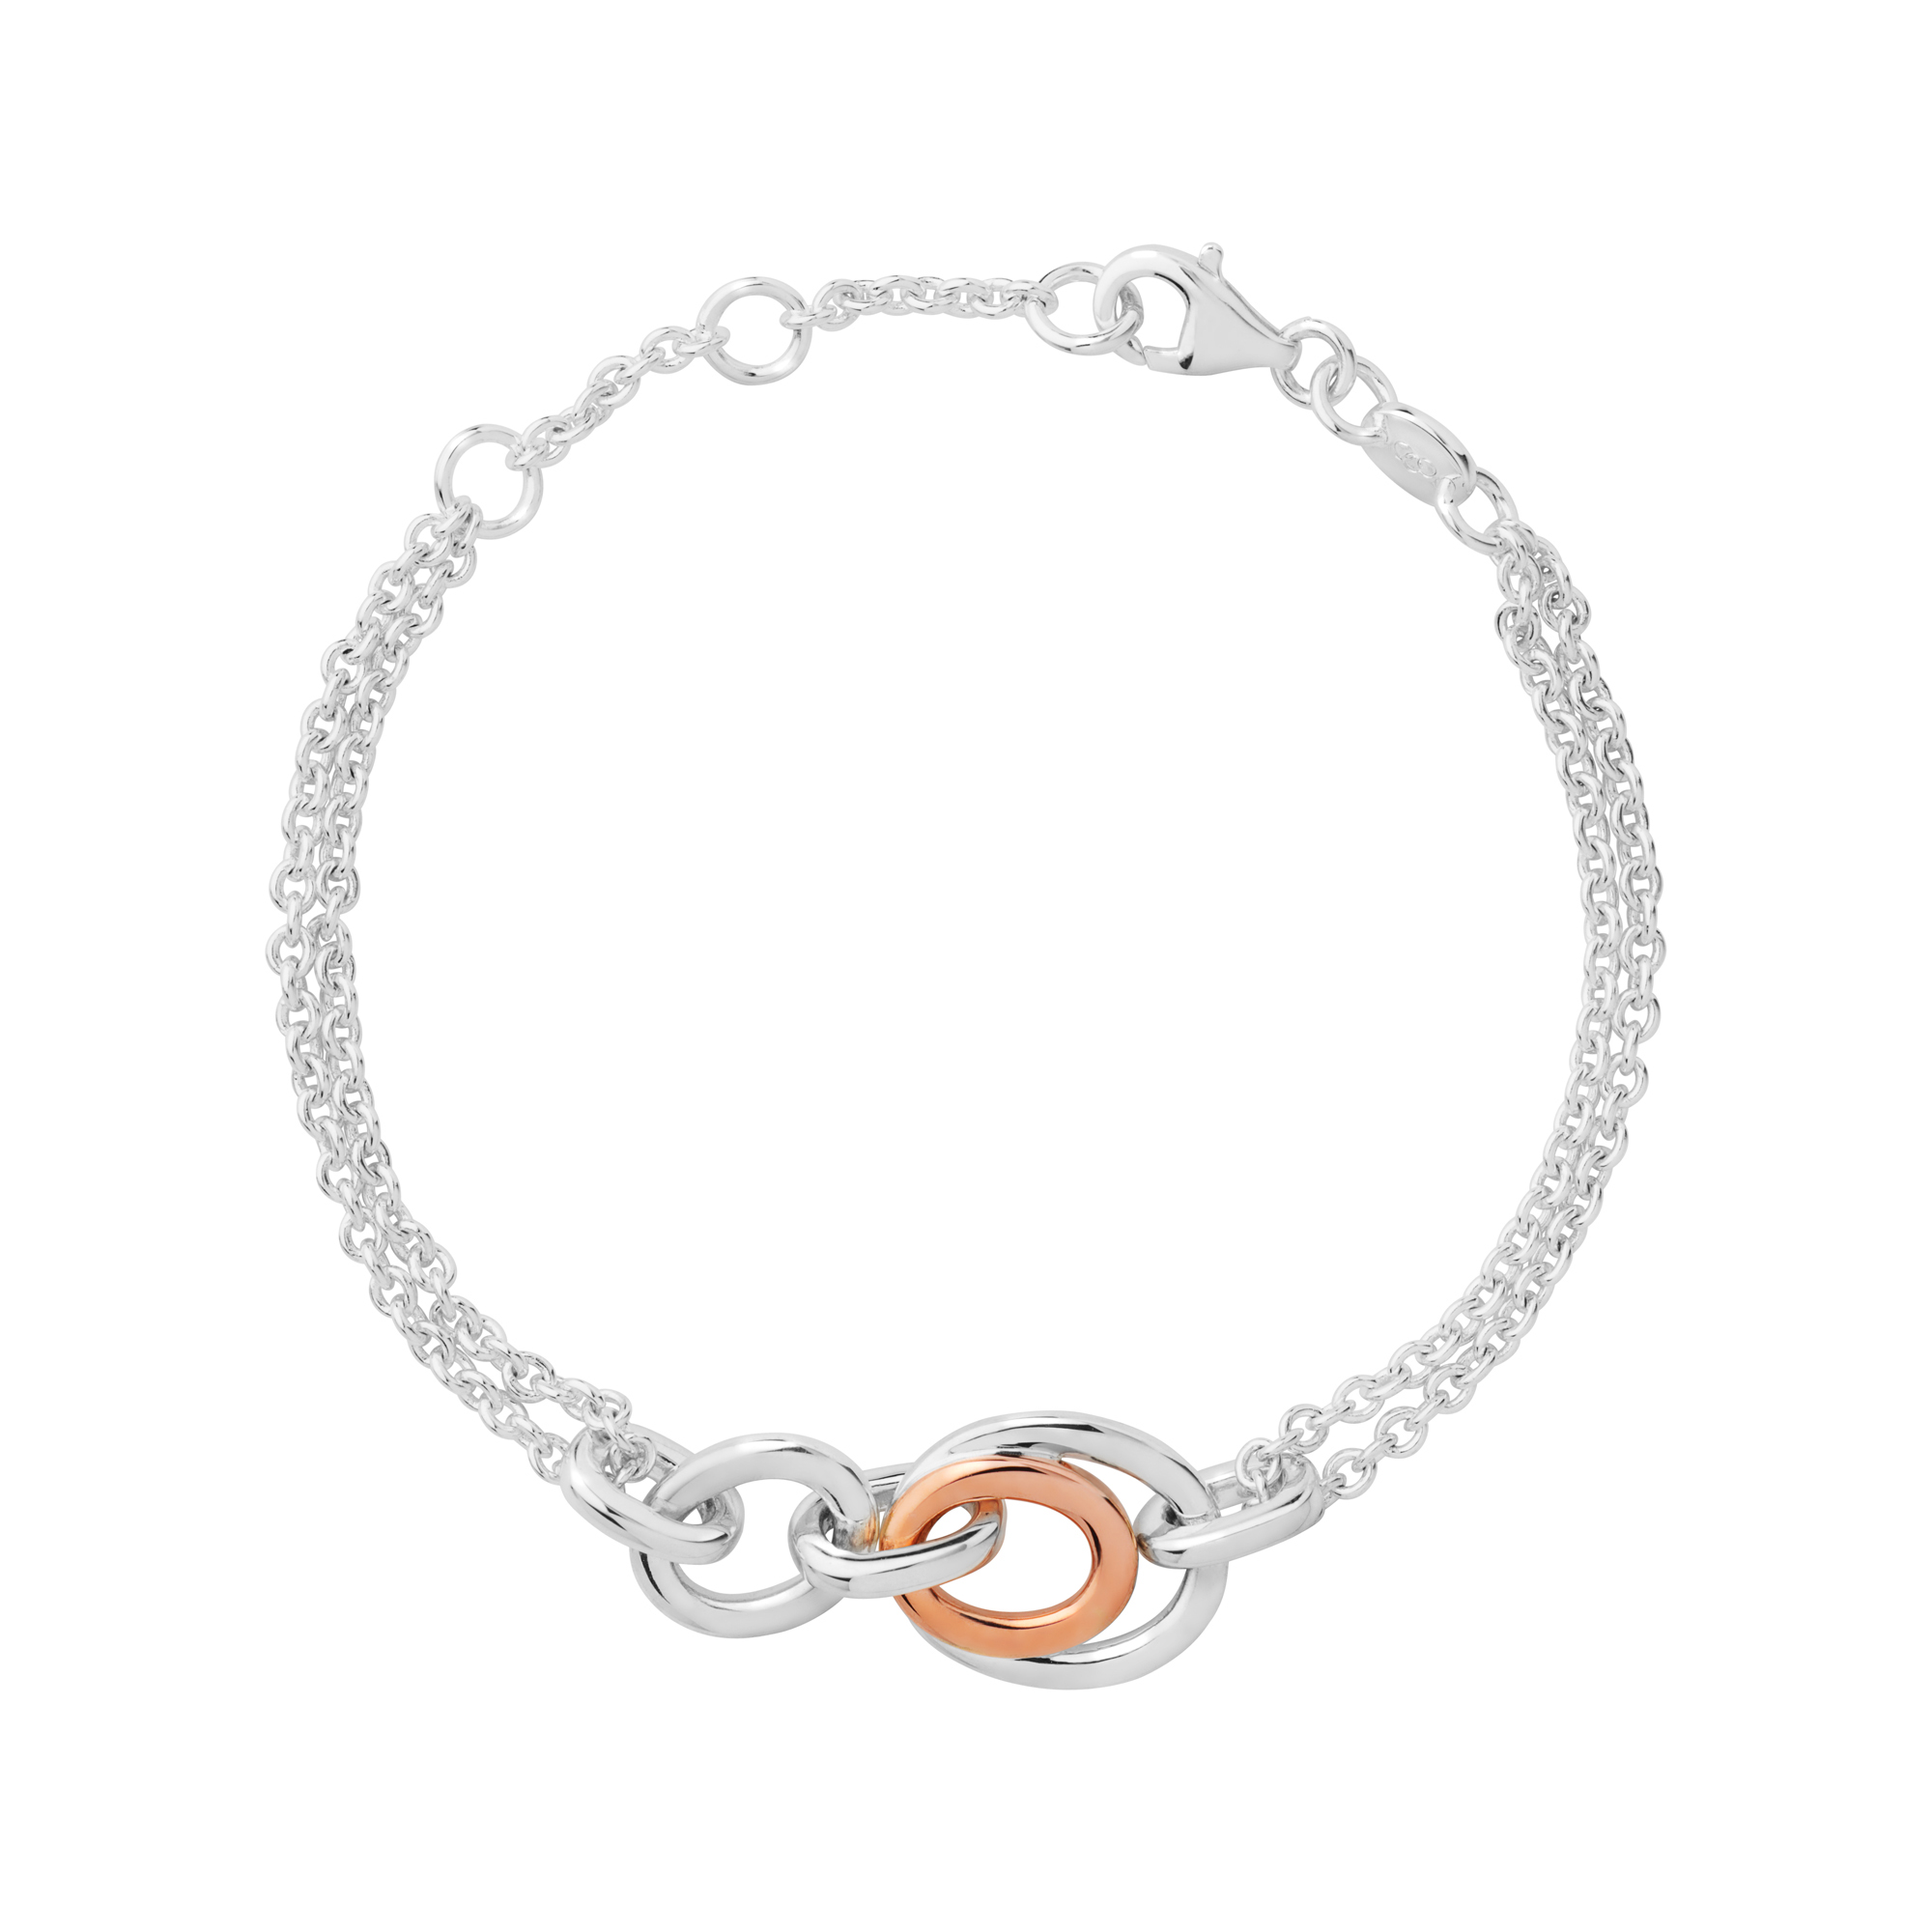 783ce1b59 Details about Links of London Sterling Silver & Rose Gold Vermeil Linked  Oval Chain Bracelet